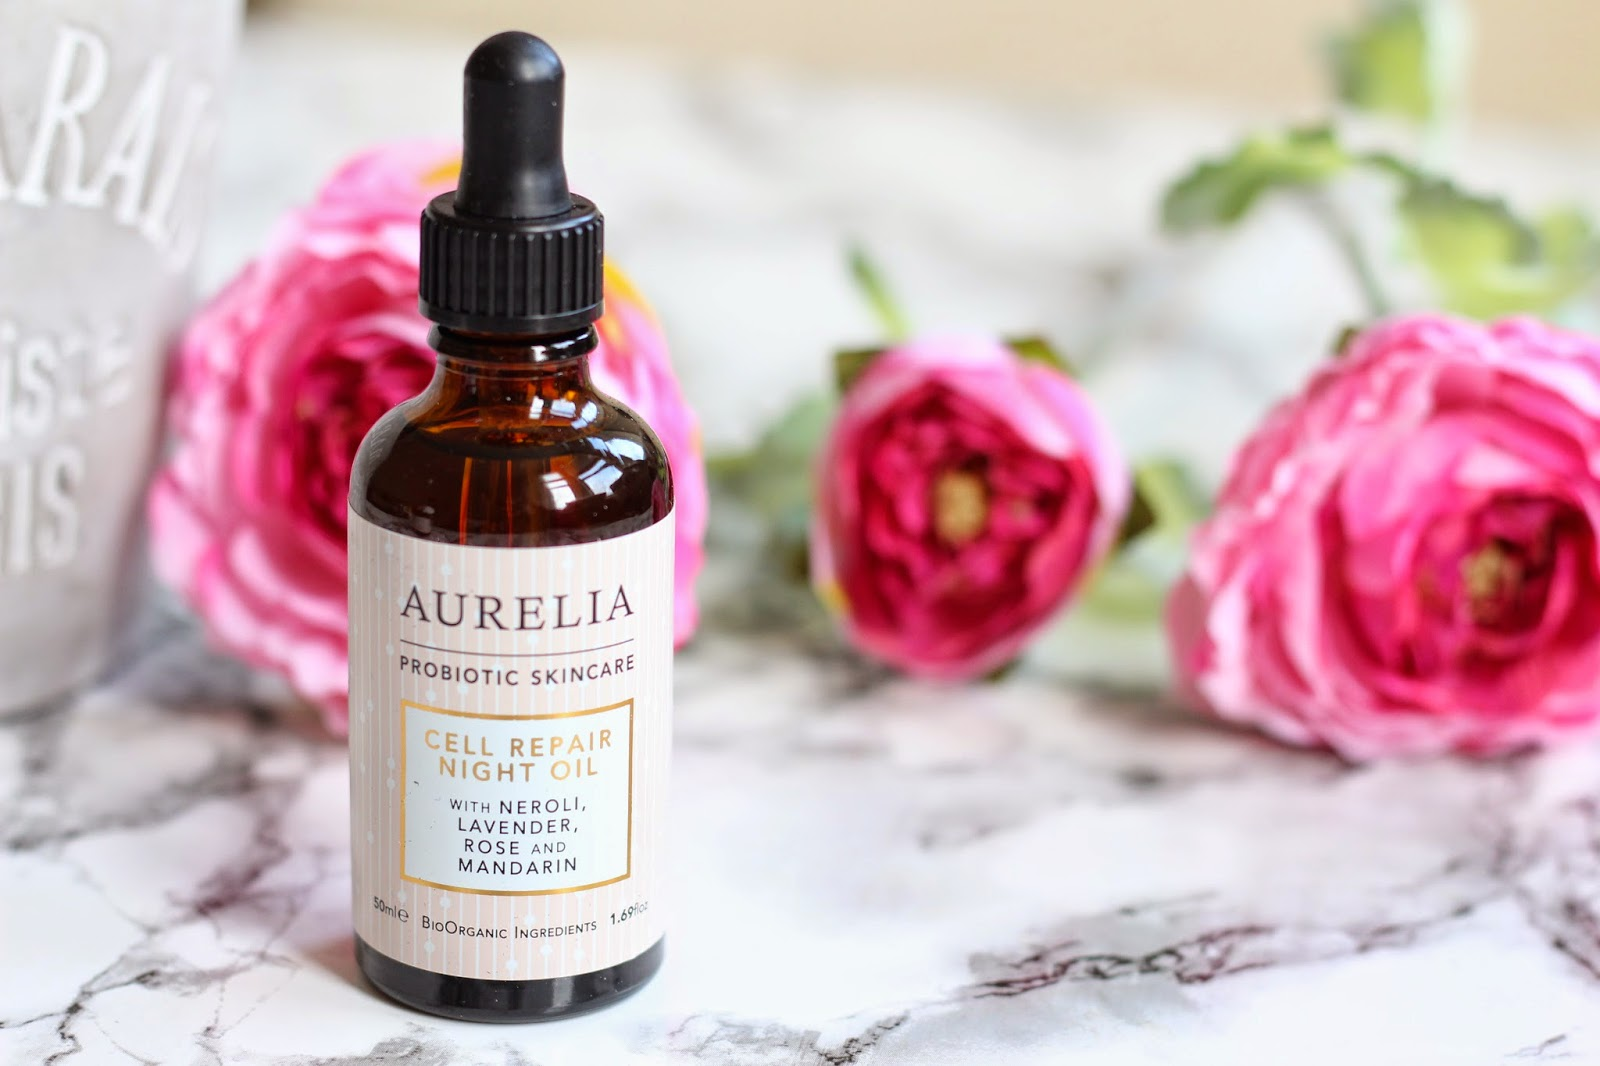 Aurelia Probiotic Skincare Cell Repair Night Oil Review